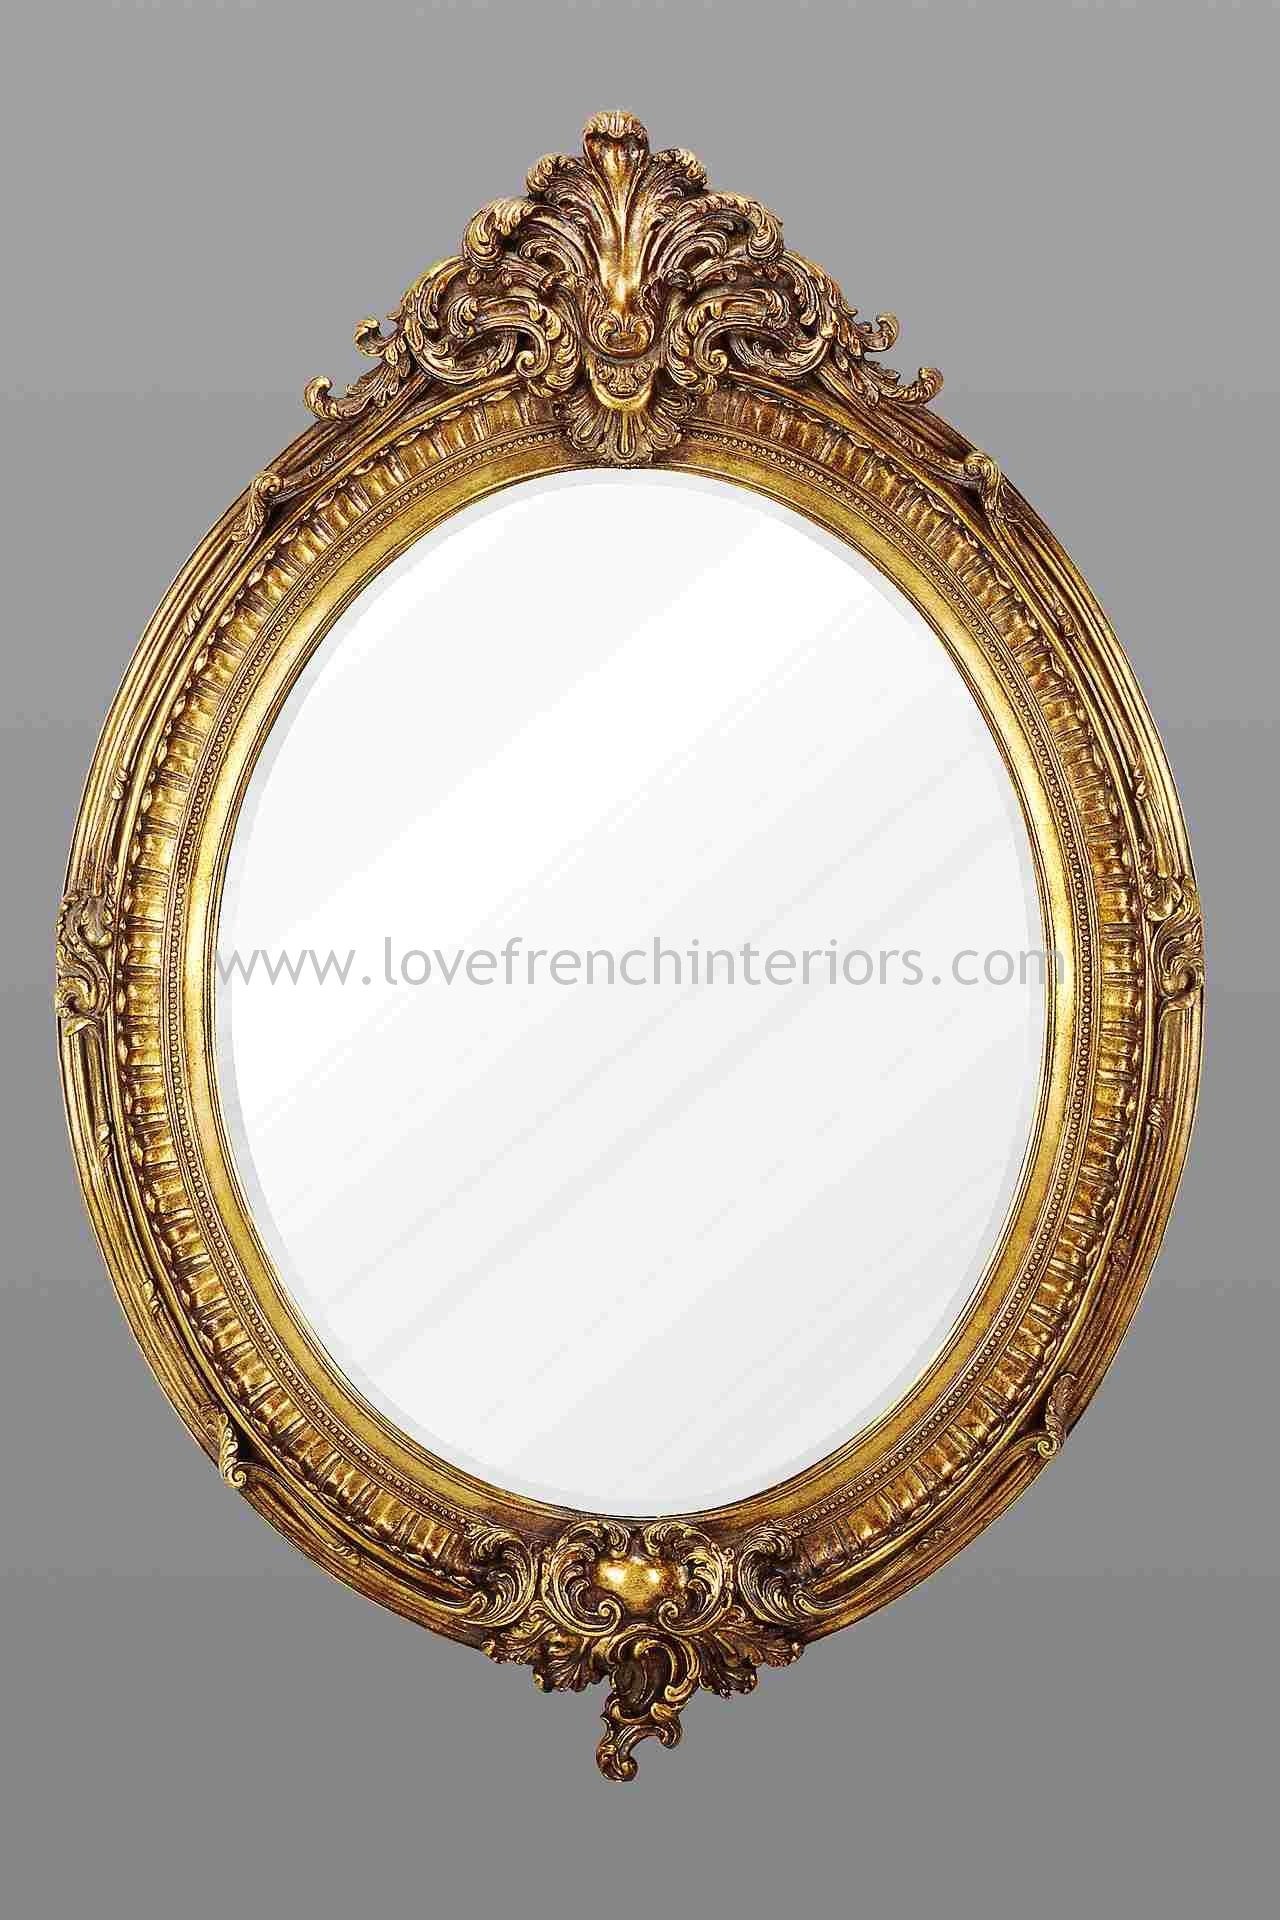 Gold Oval French Mirror Intended For Oval French Mirror (Photo 4 of 15)